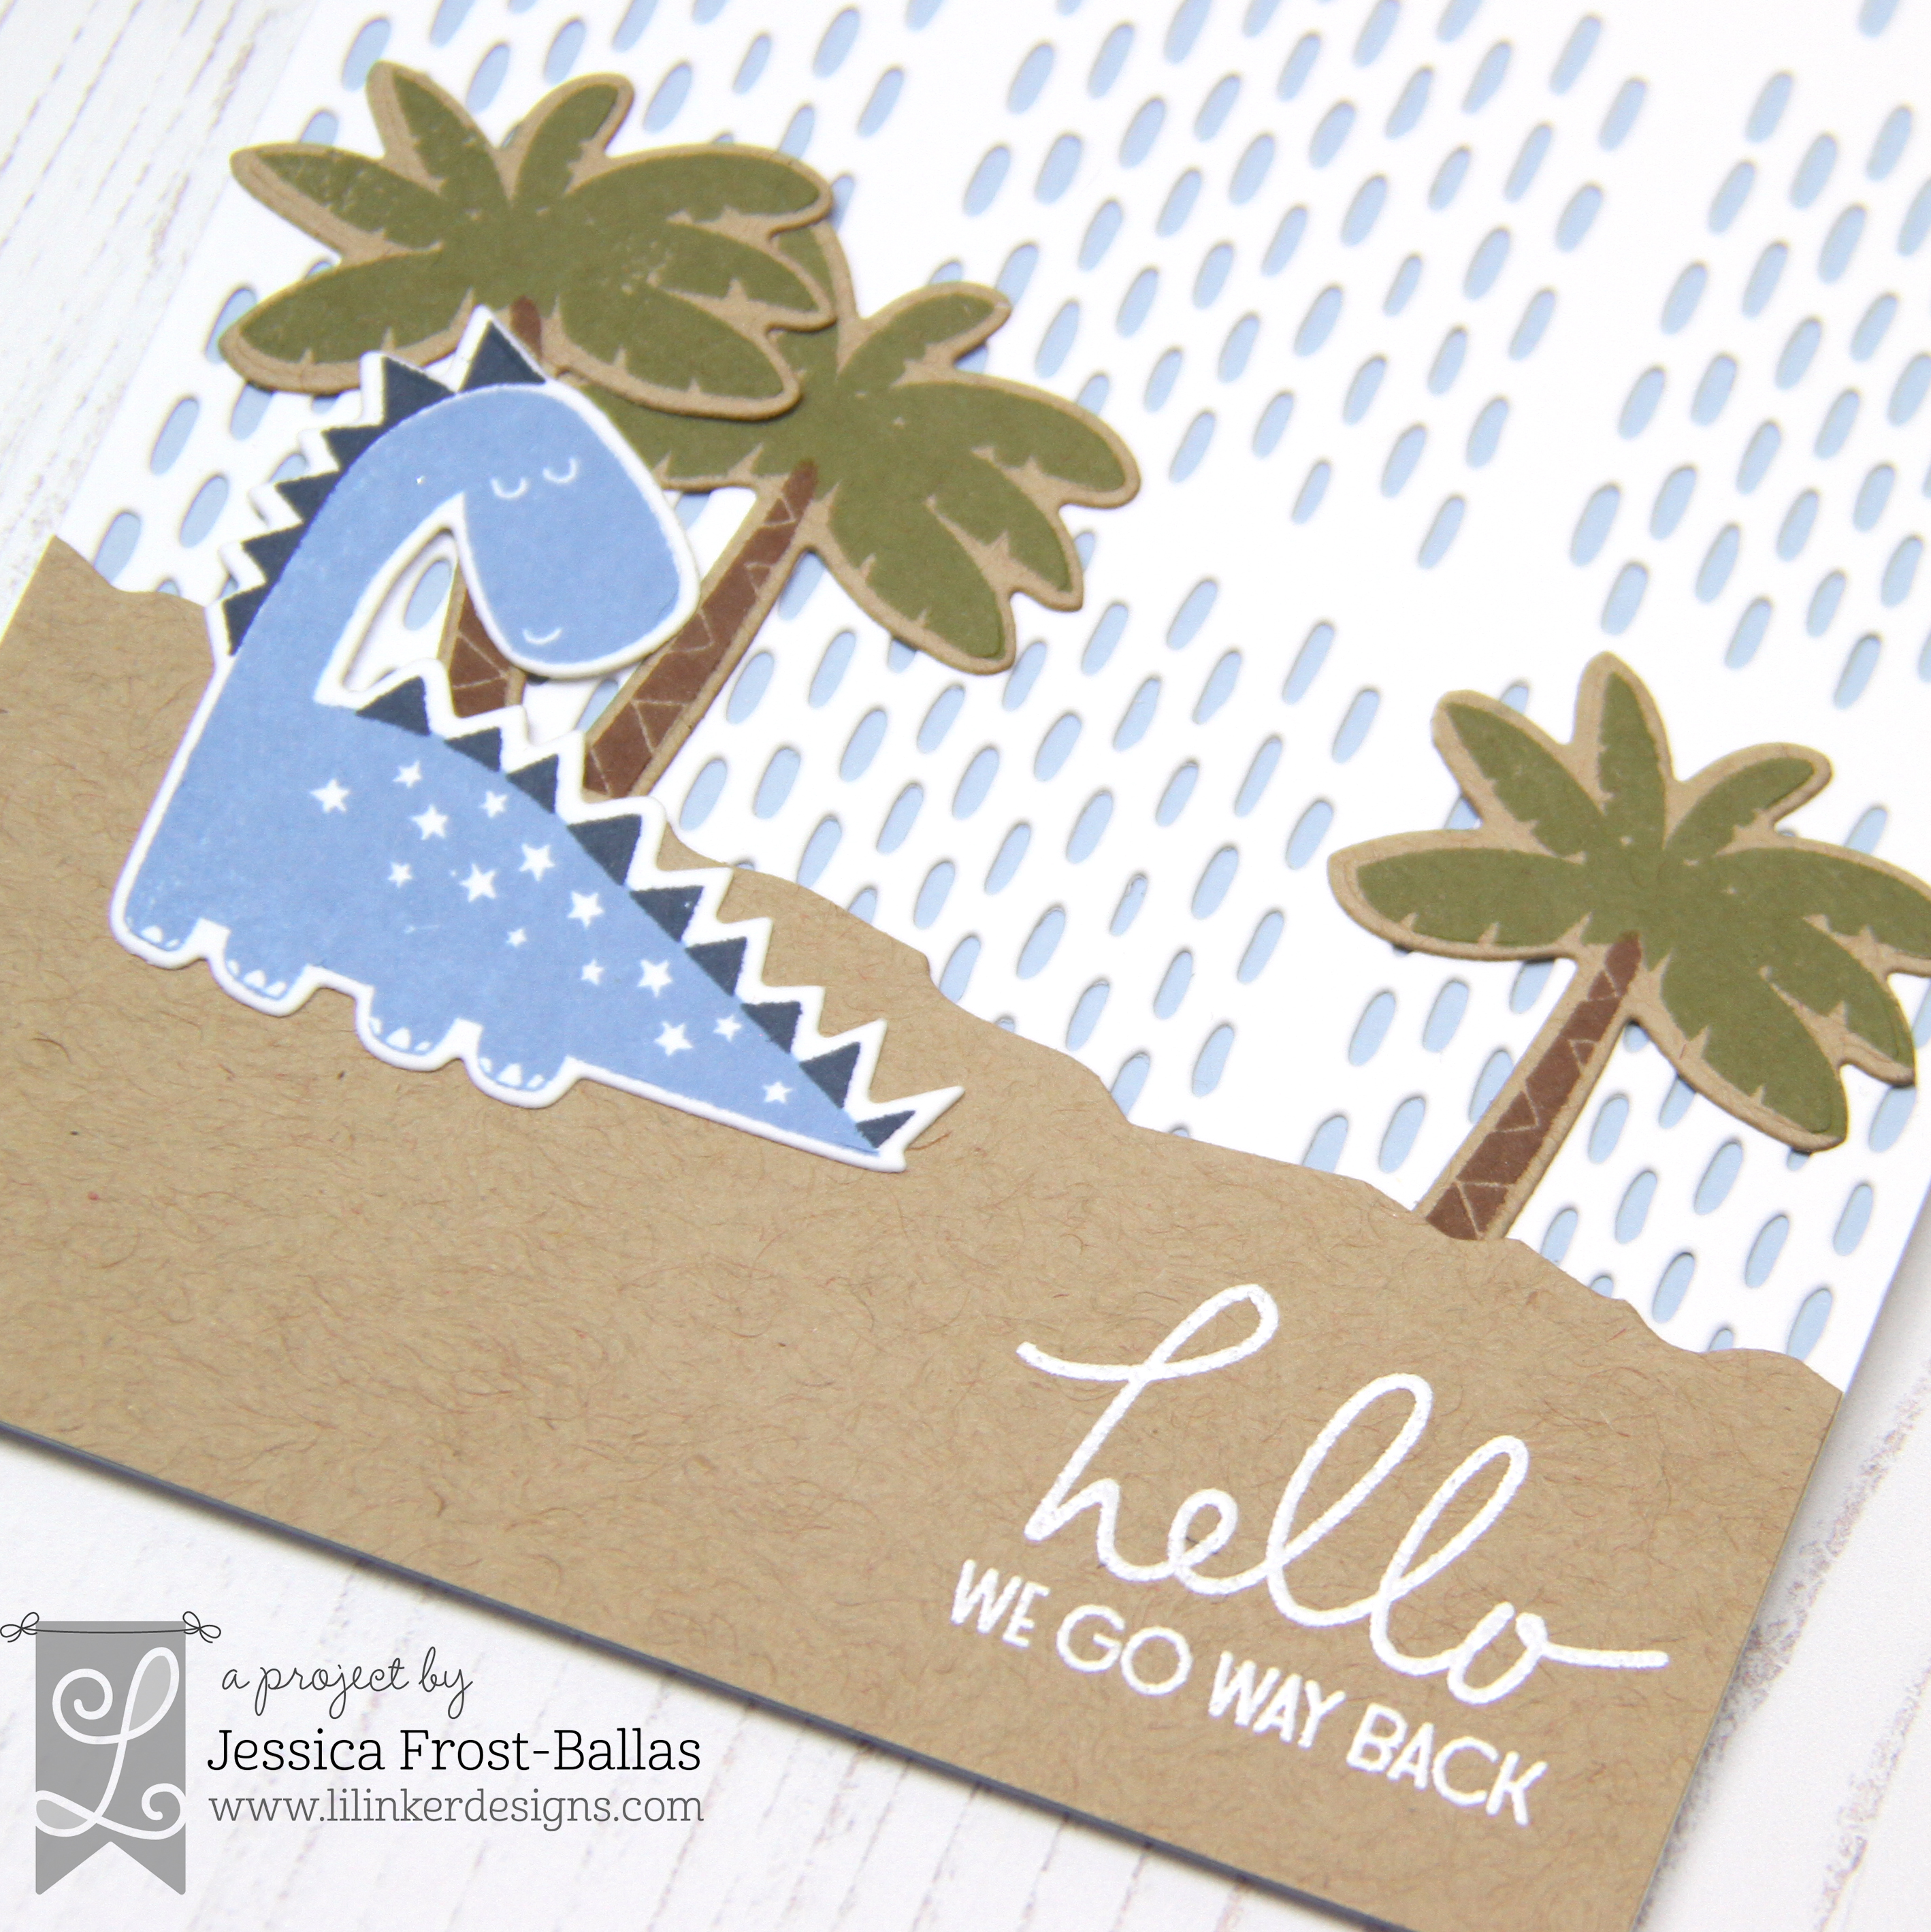 Hello We Go Way Back by Jessica Frost-Ballas for Lil' Inker Designs